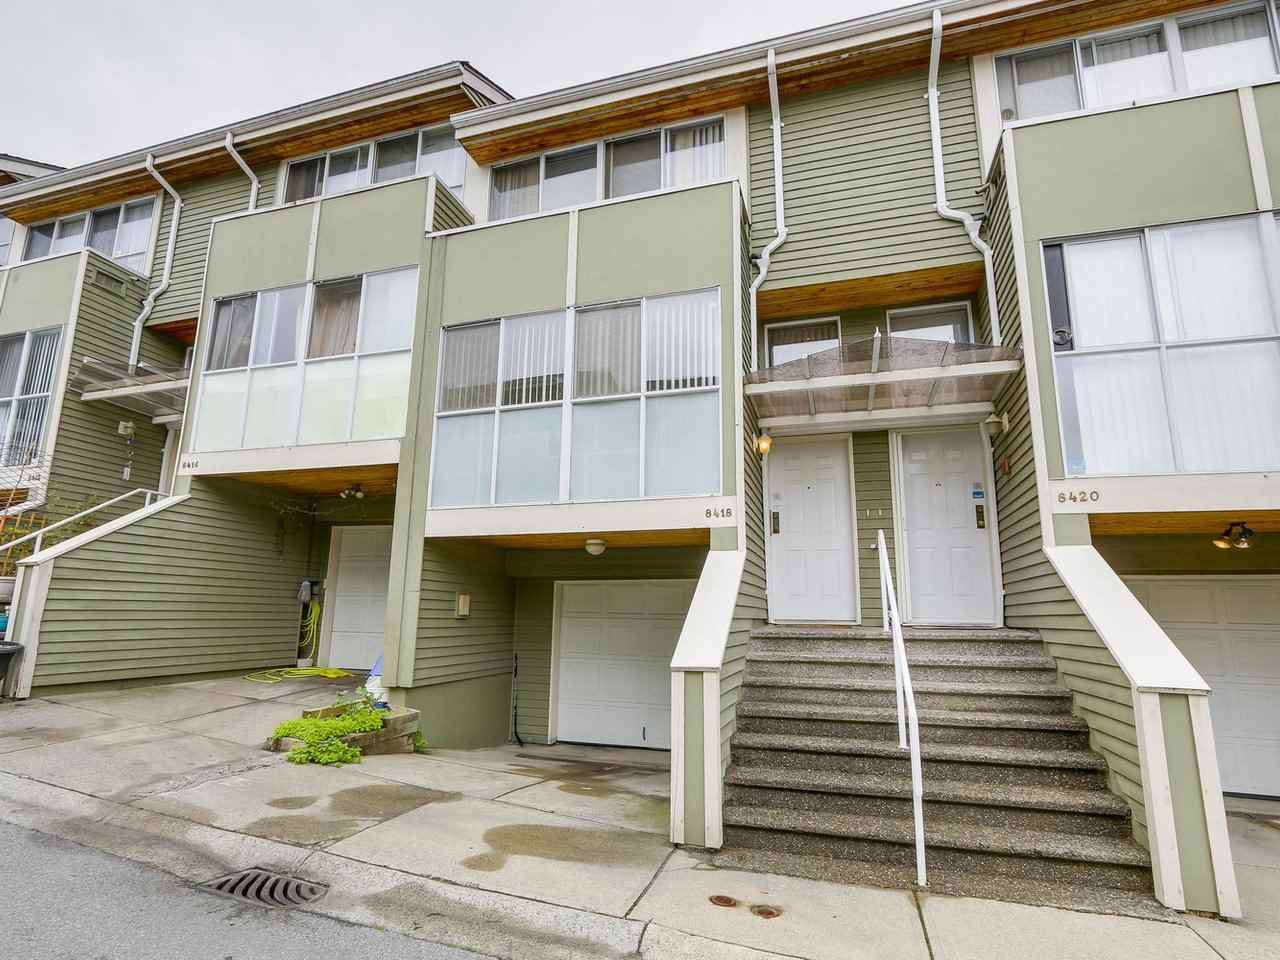 "Main Photo: 8418 CORNERSTONE Street in Vancouver: Champlain Heights Townhouse for sale in ""MARINE WOODS"" (Vancouver East)  : MLS®# R2209751"